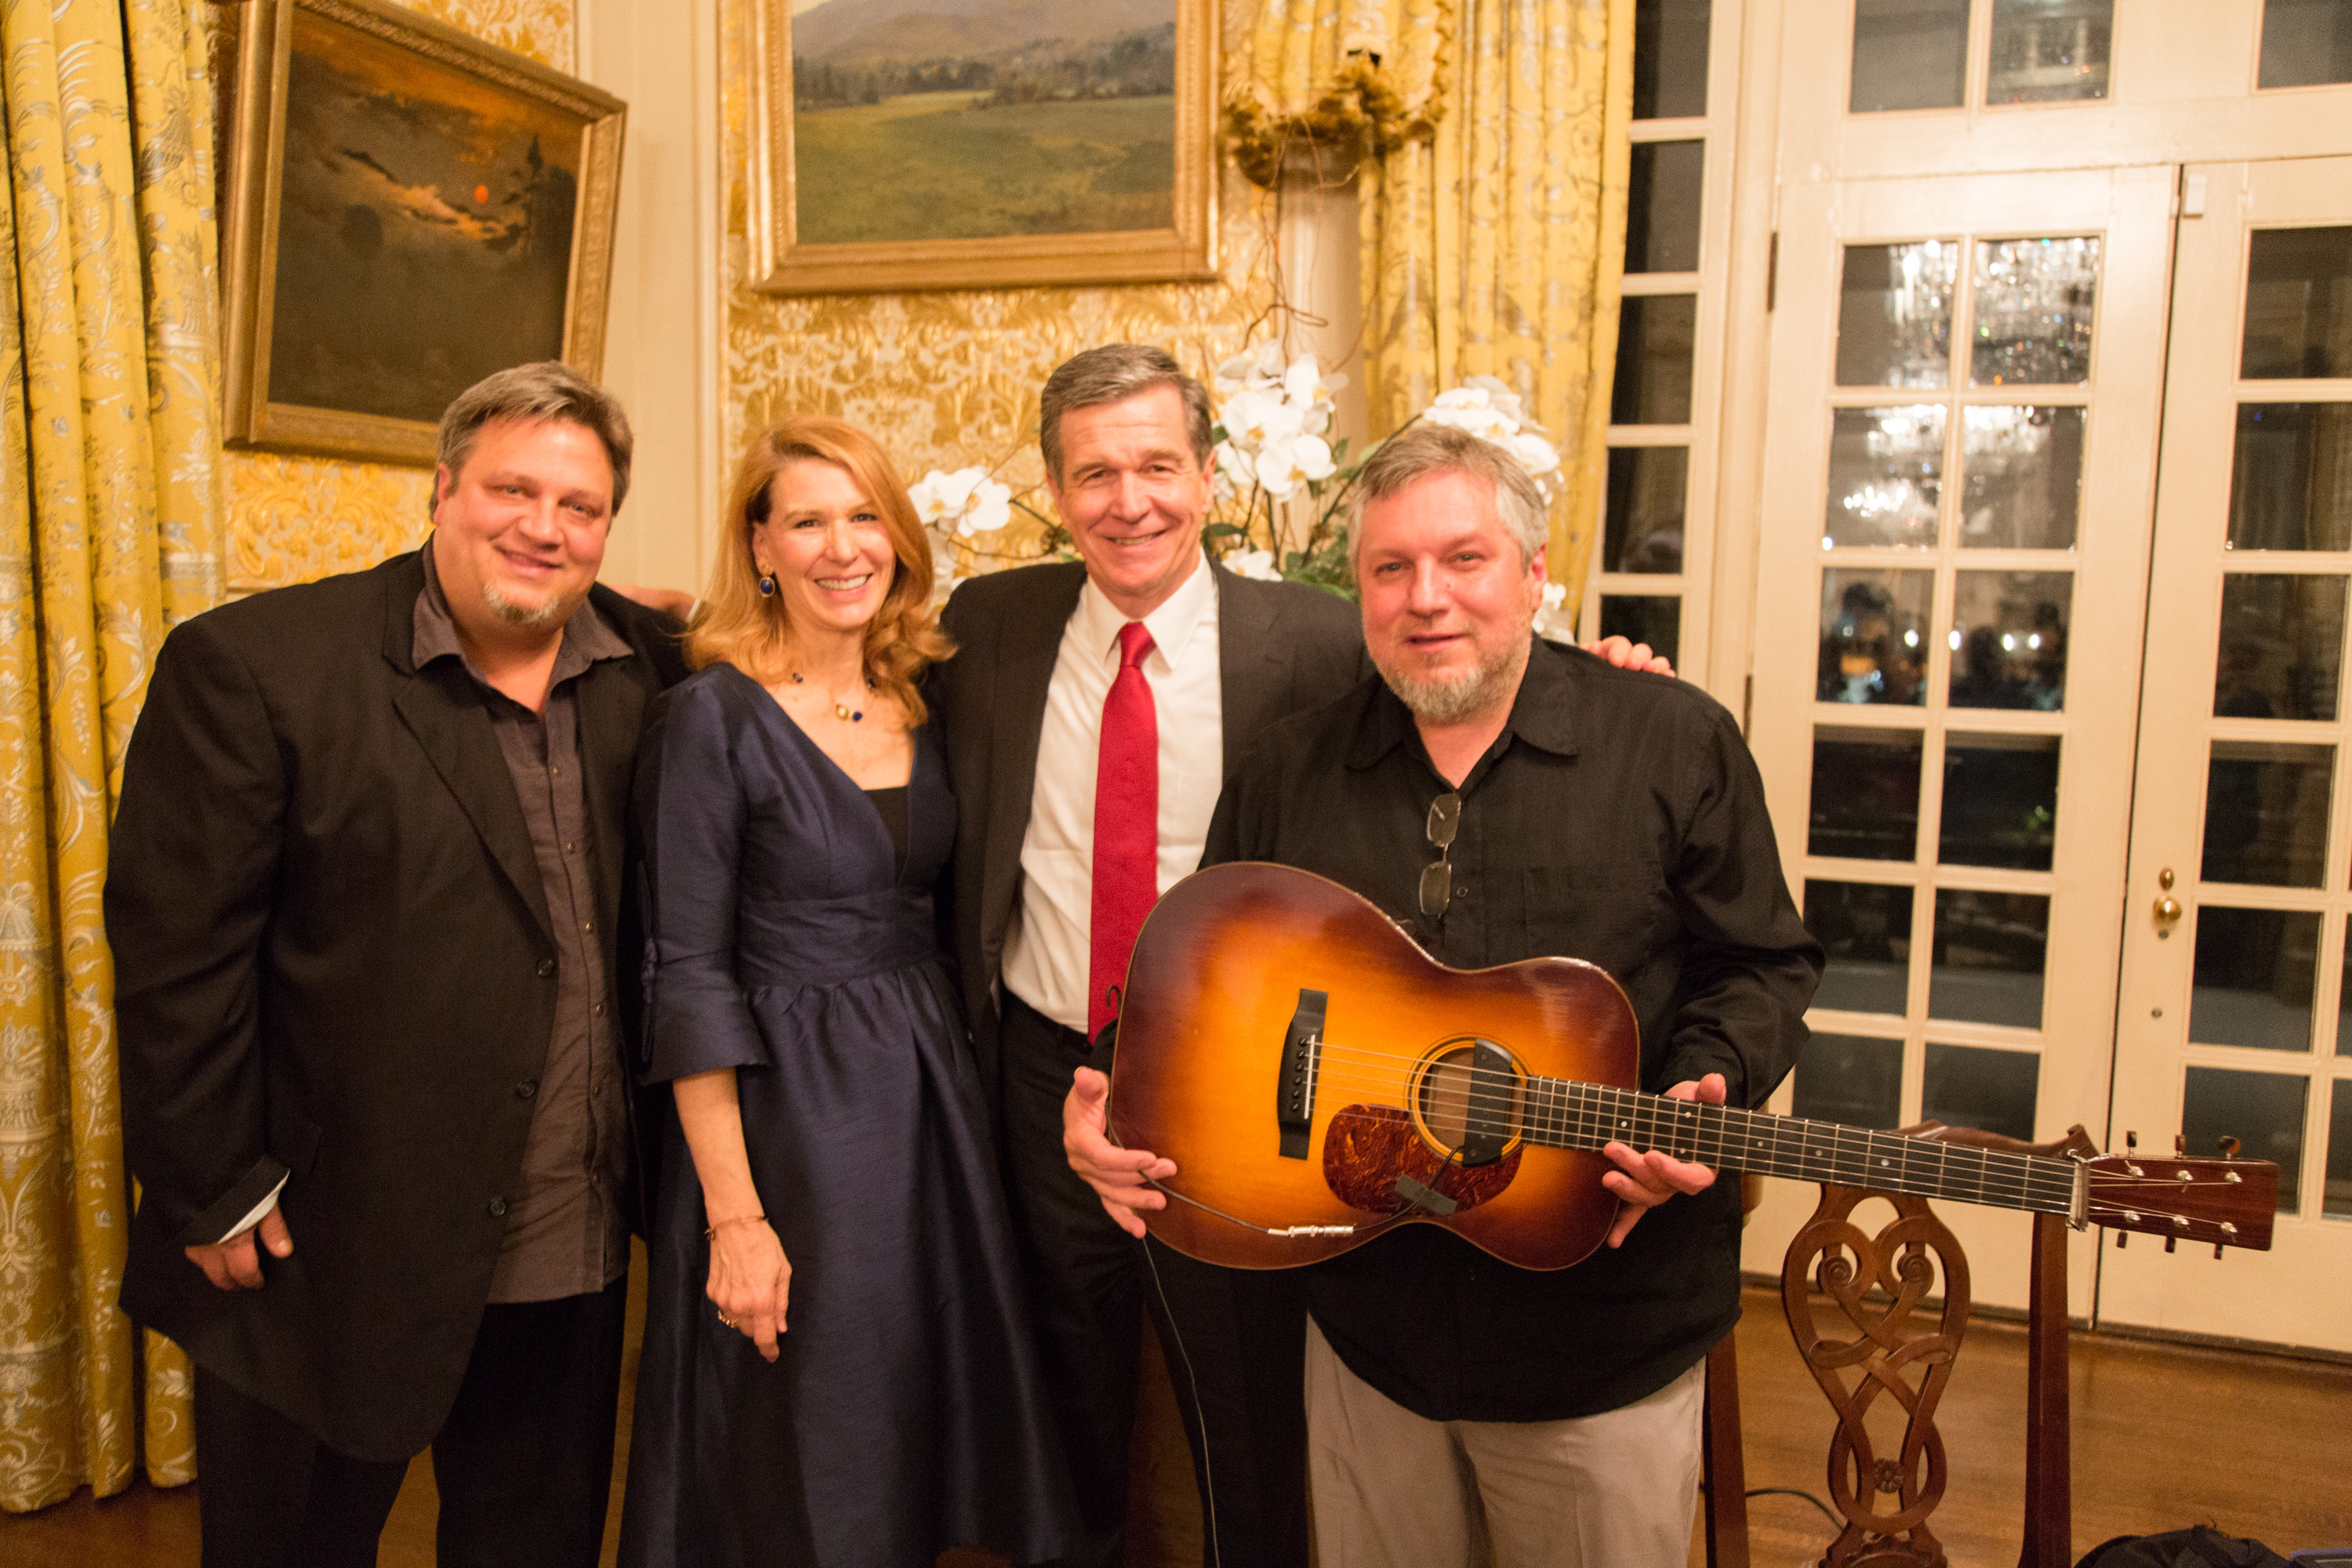 The Harris Brothers with Governor Roy Cooper and First Lady Kristin Cooper